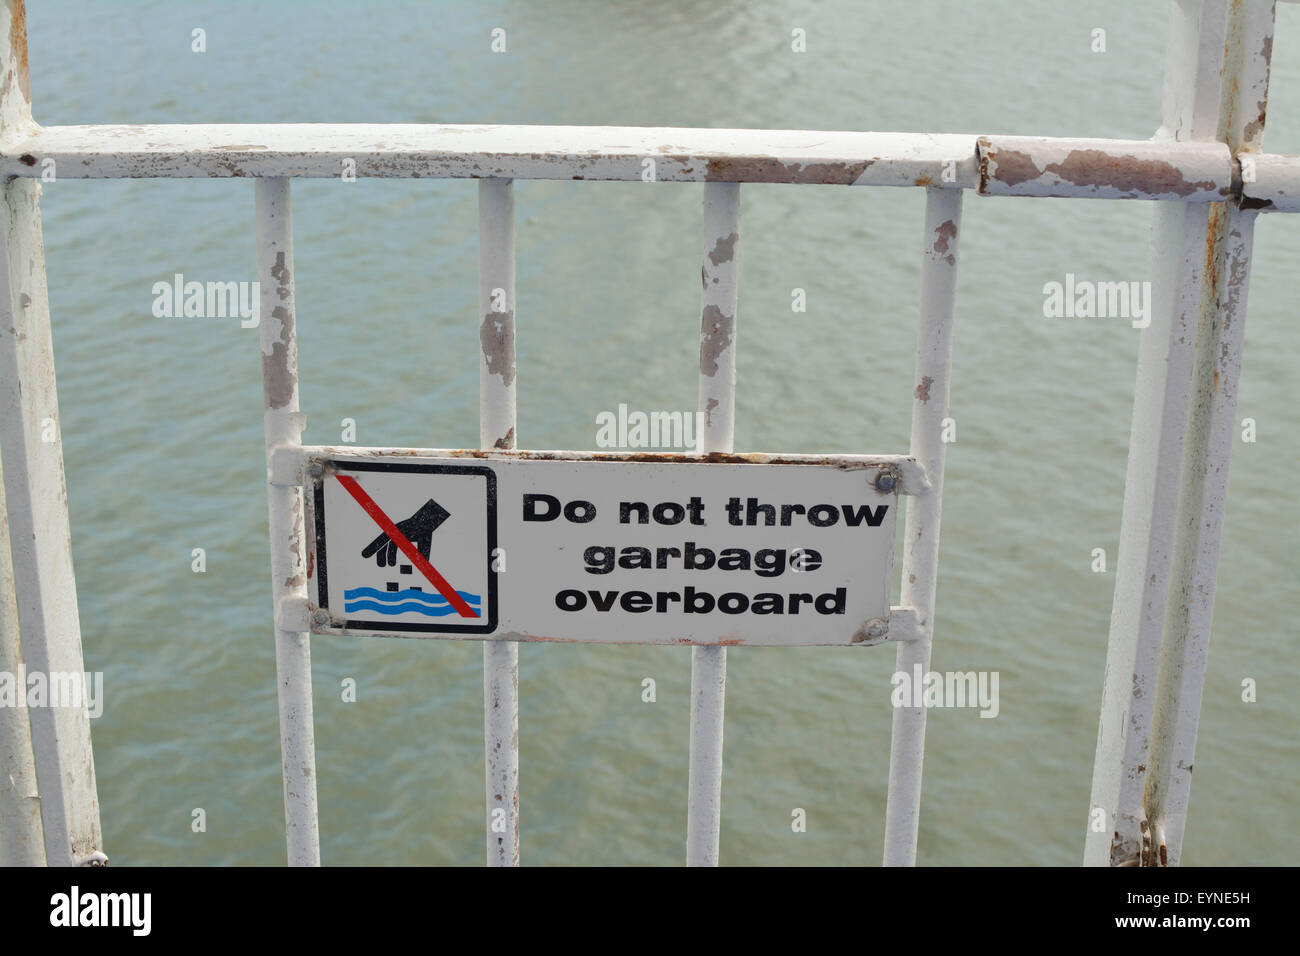 Do not throw garbage overboard sign on board passenger car ferry - Stock Image